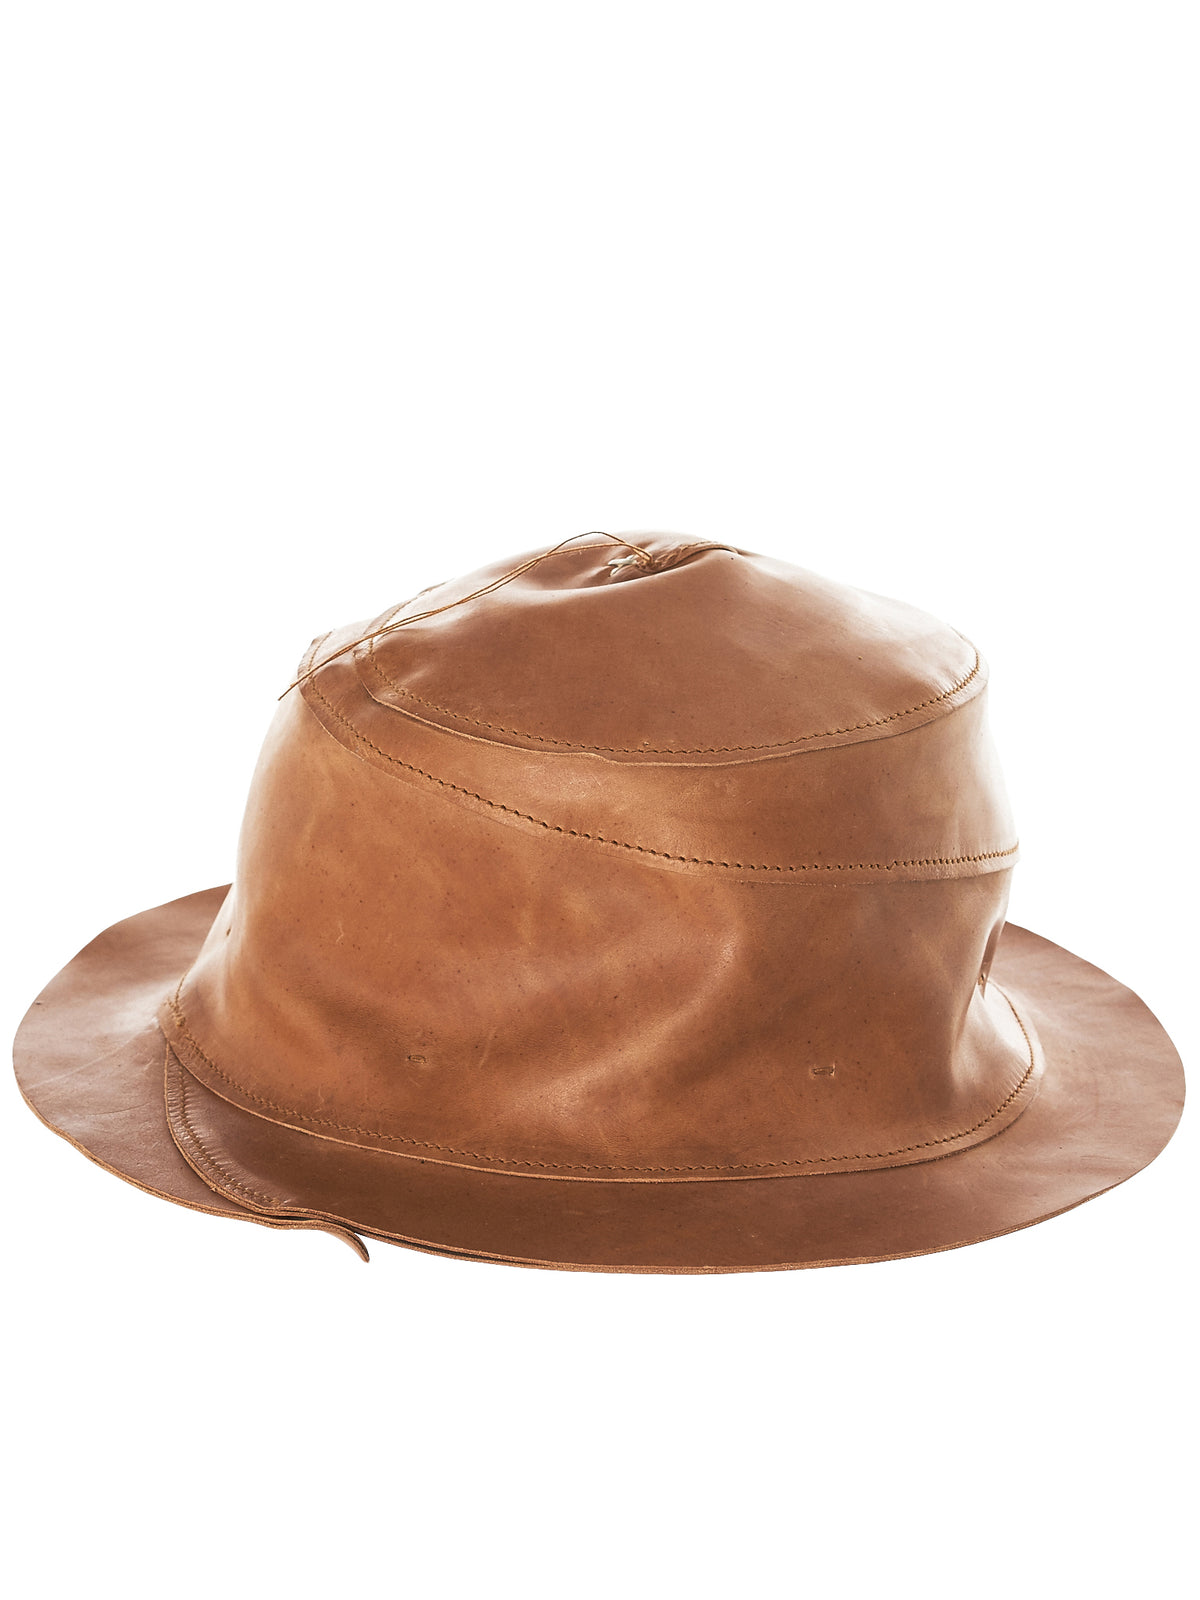 Spiral Leather Hat (AW171-VAN-1-0-NATURAL)